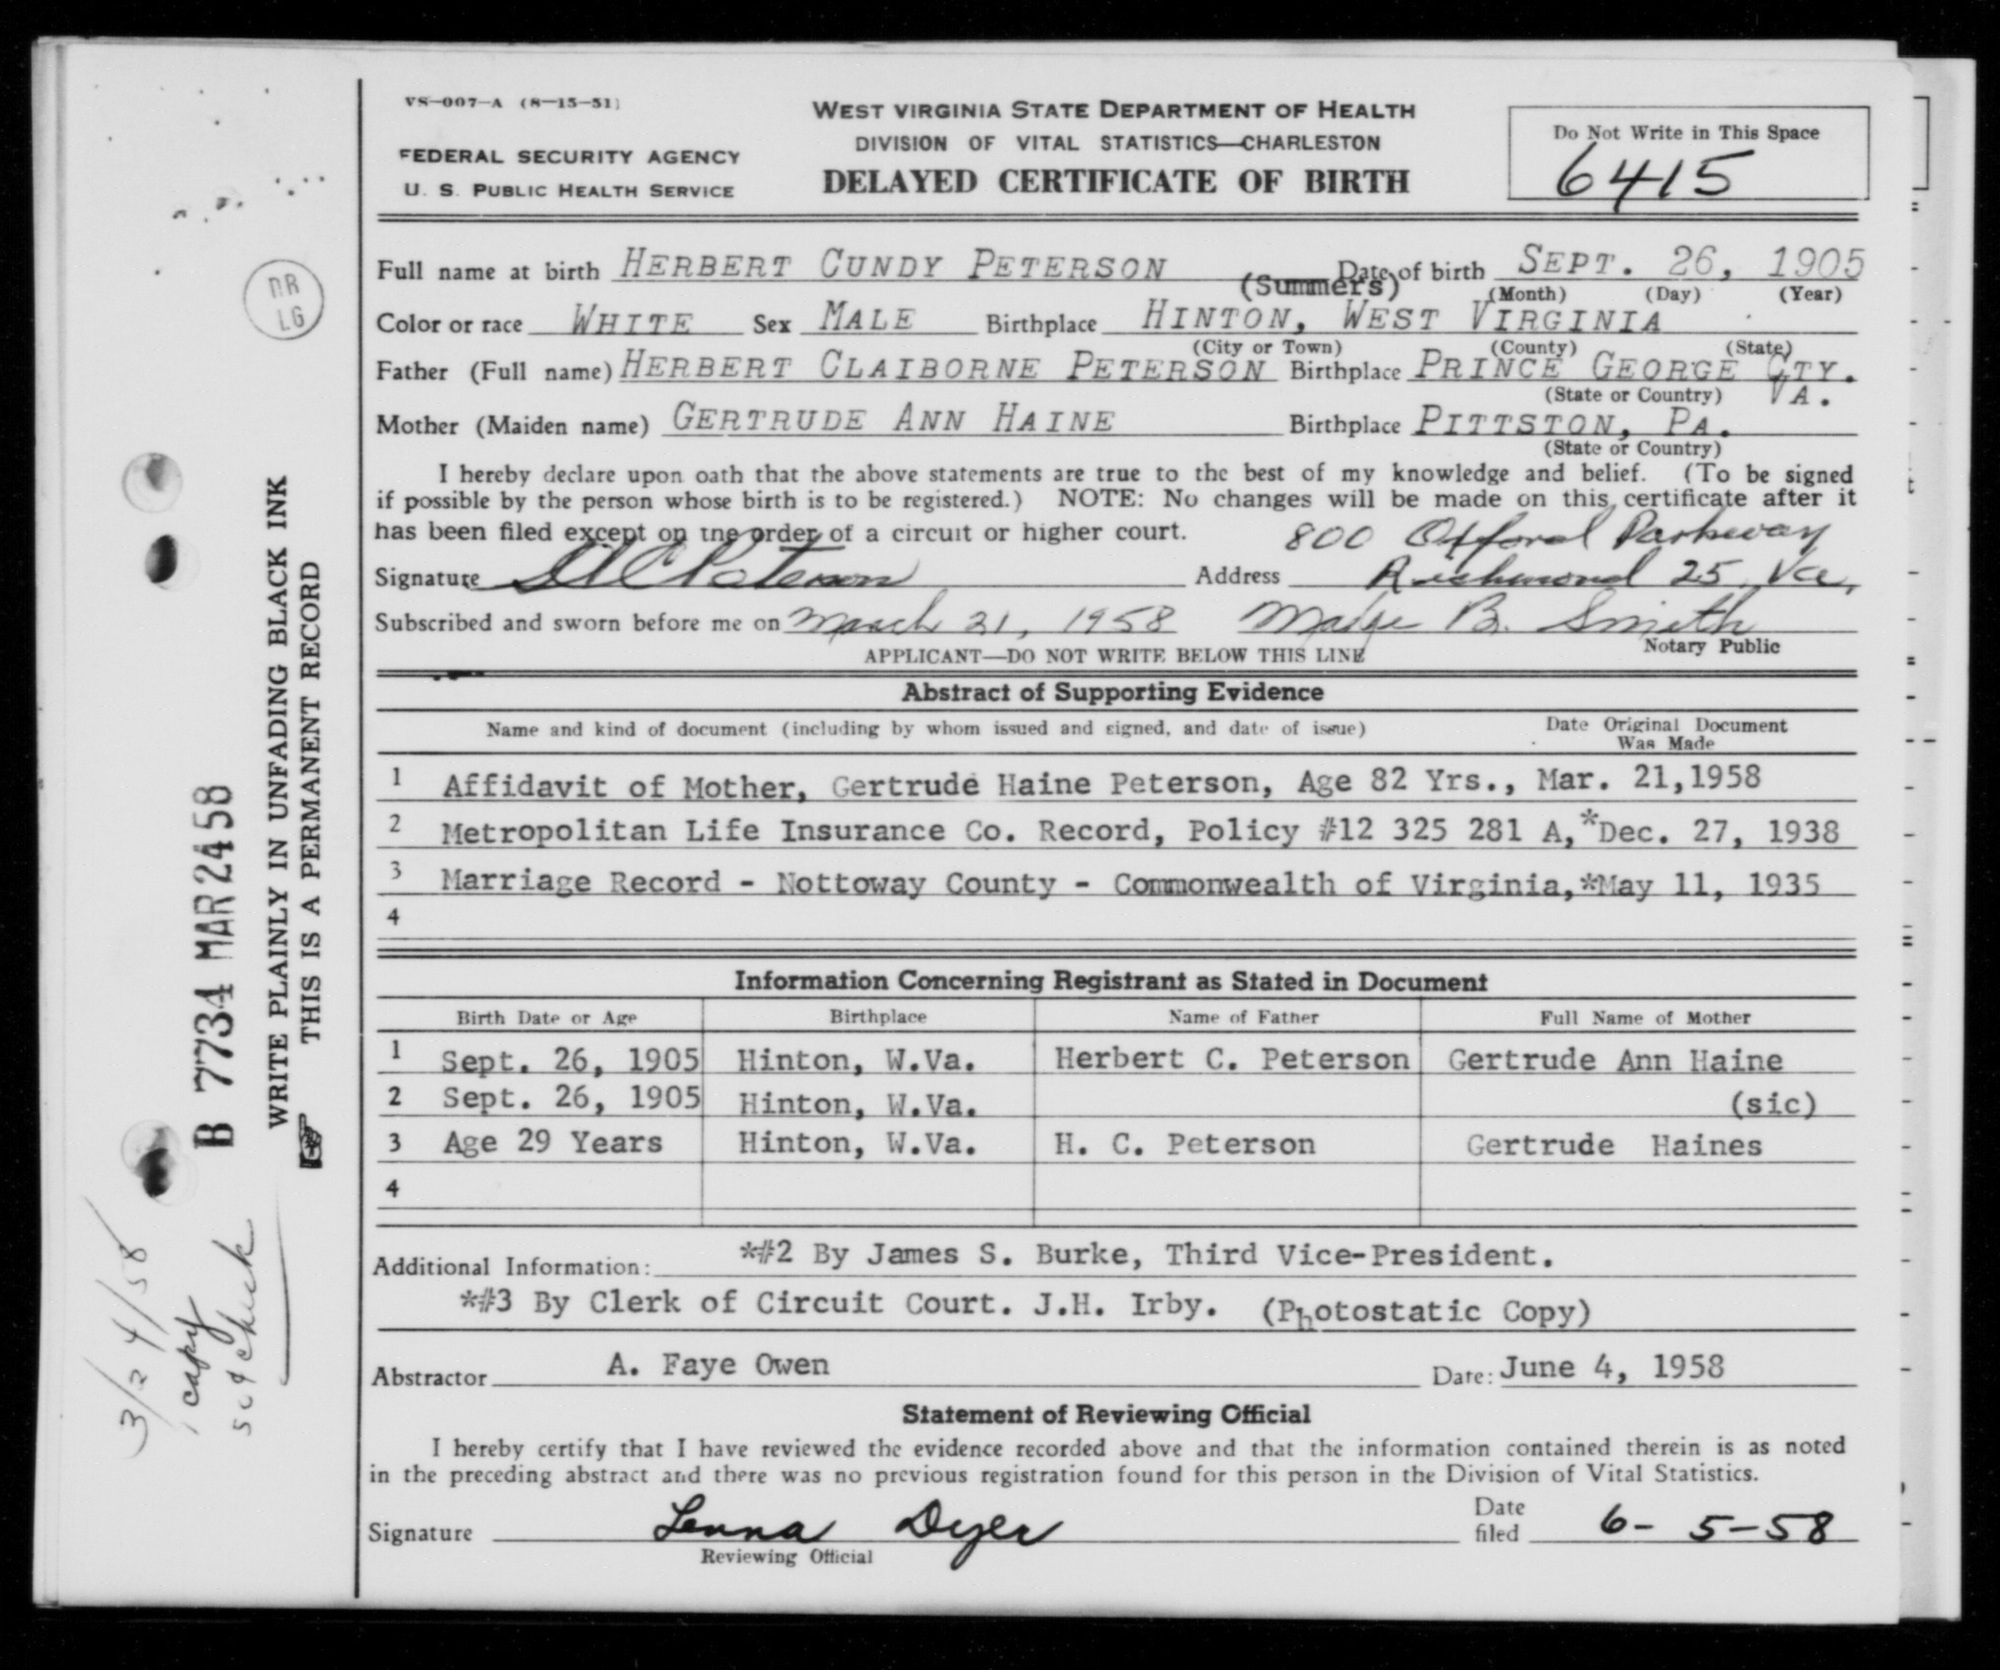 Herbert cundy peterson 1905 1981 find a grave memorial 26 sep 1905 hinton summers county wv birth certificate for herbert cundy peterson aiddatafo Gallery